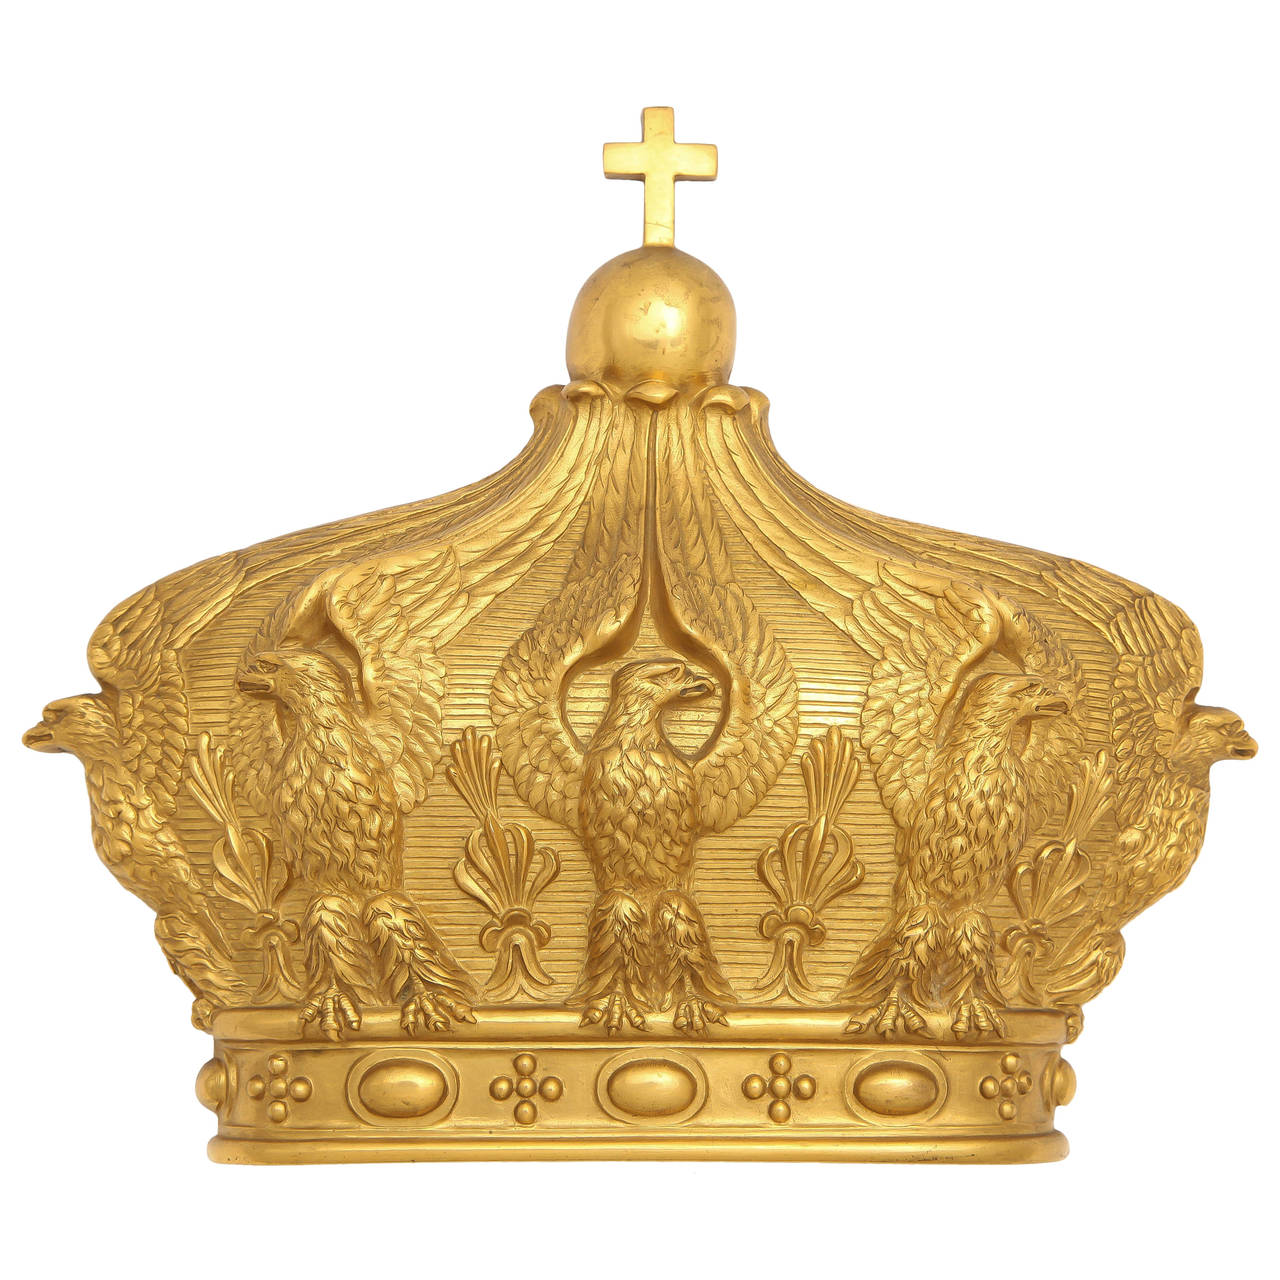 French Gilded Bronze Empress Eugenie Crown Wall Mount, 19th Century 1